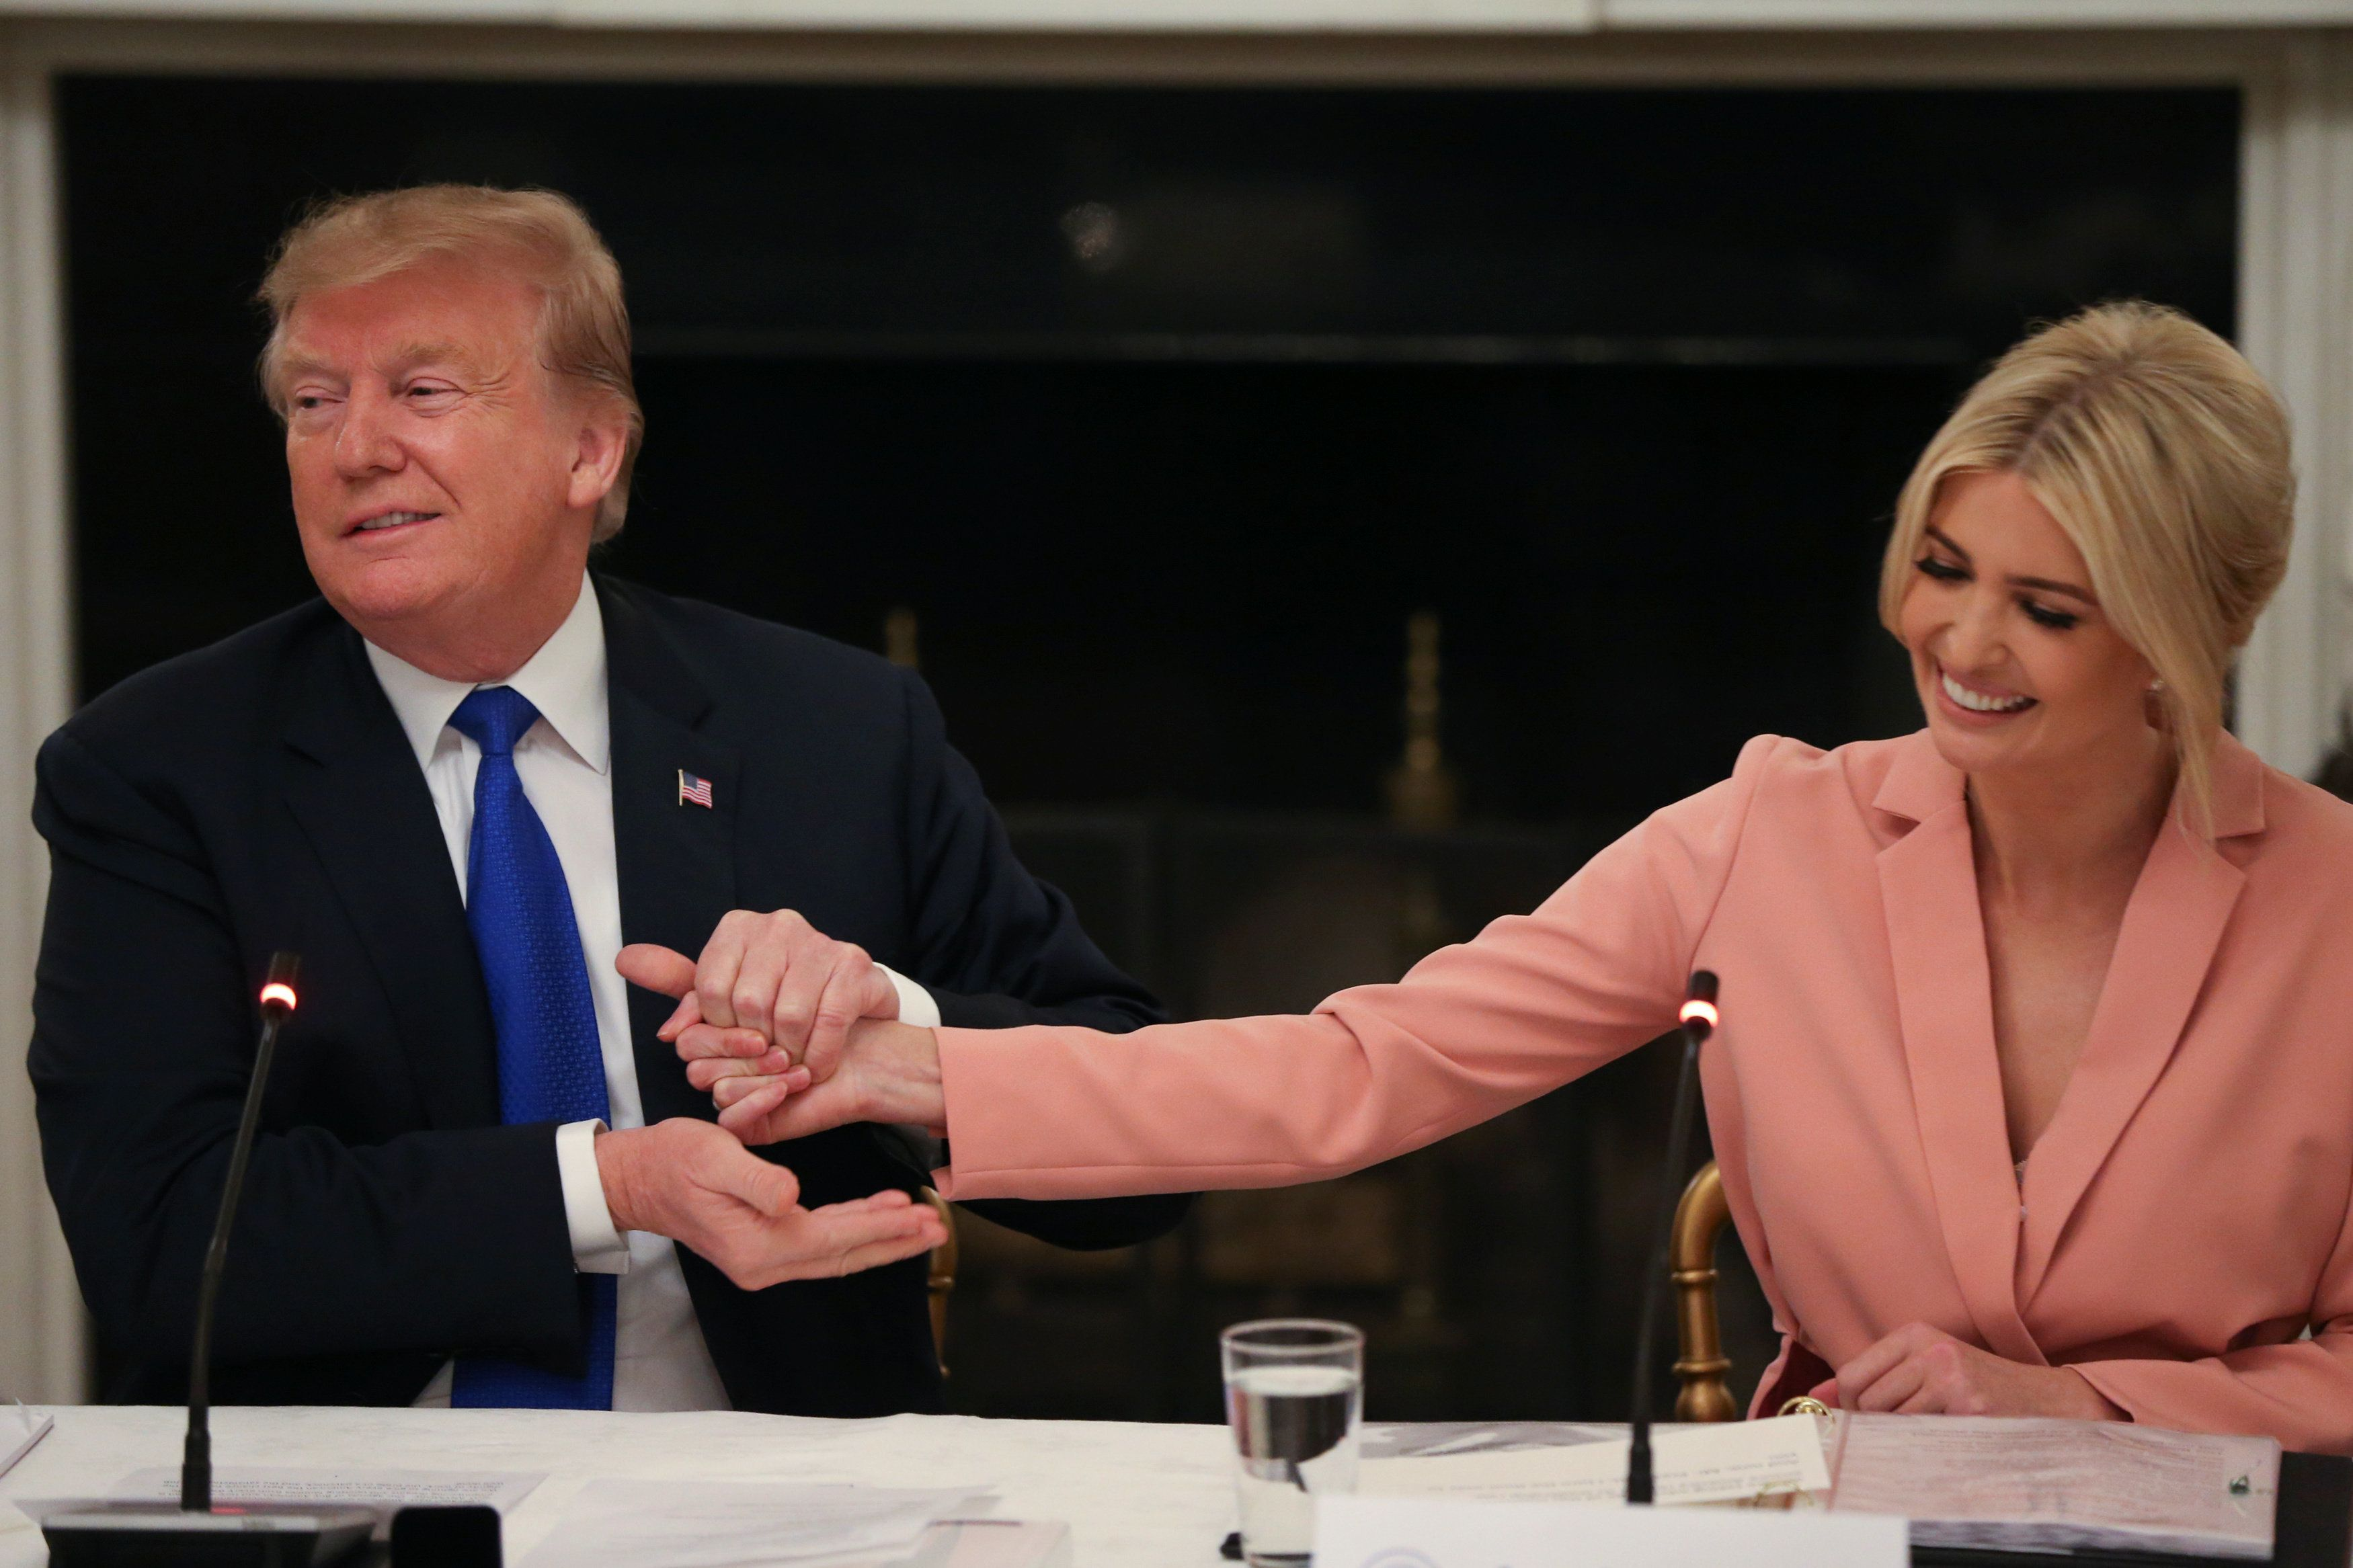 U.S. President Donald Trump grabs the hand of White House senior advisor and his daughter Ivanka Trump as they participate in an American Workforce Policy Advisory Board meeting in the White House State Dining Room in Washington, U.S., March 6, 2019. REUTERS/Leah Millis?